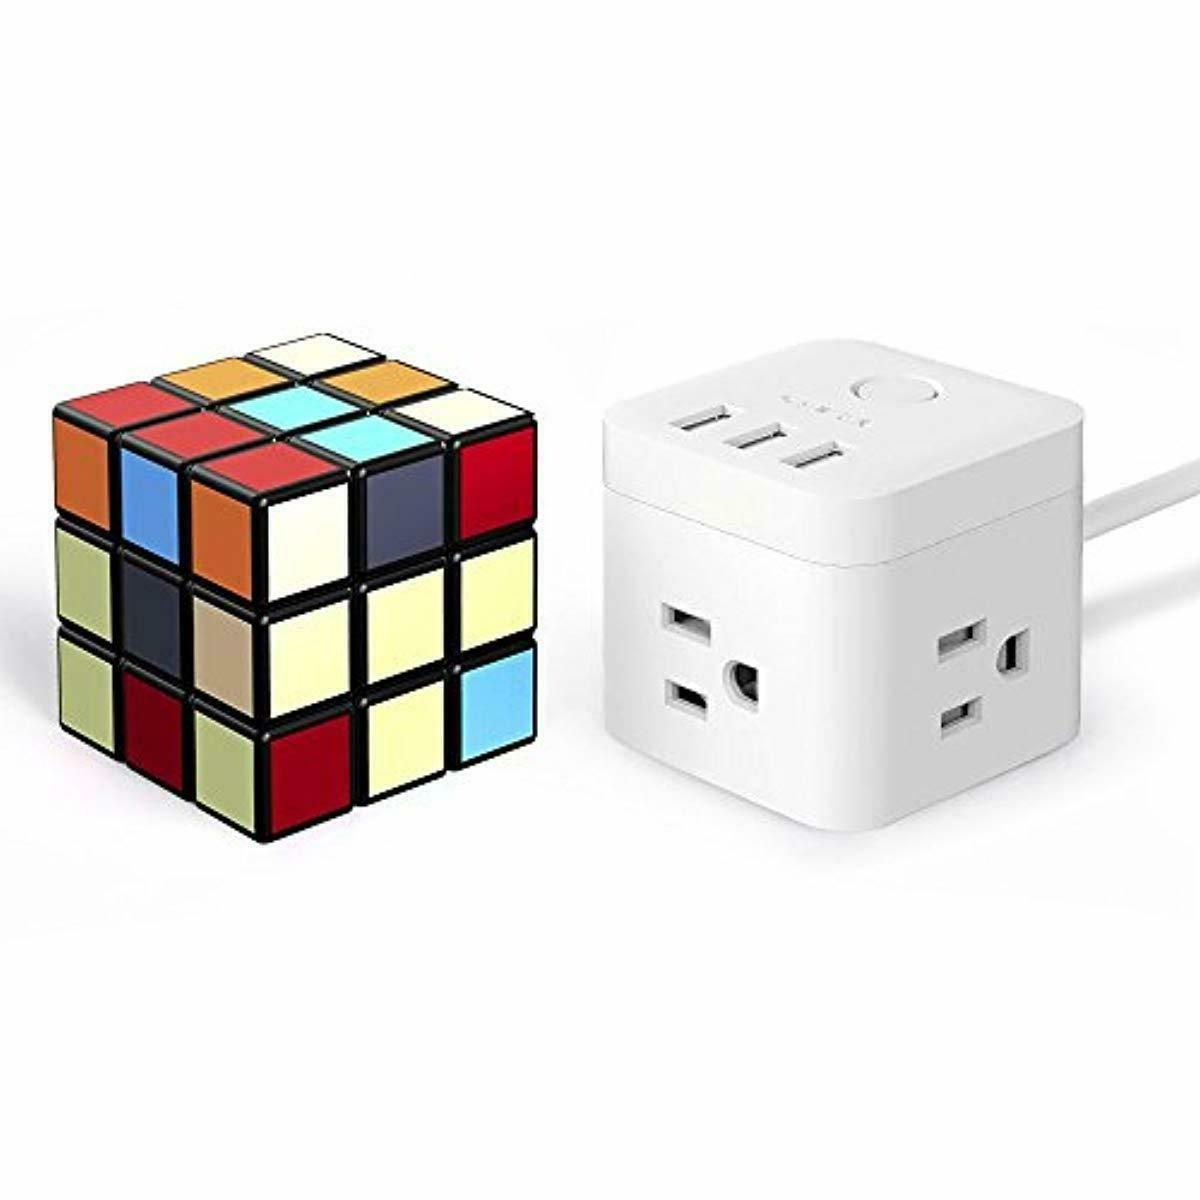 3 Power Strip Compact Cube 3 Smart Charging 4.92ft Cable